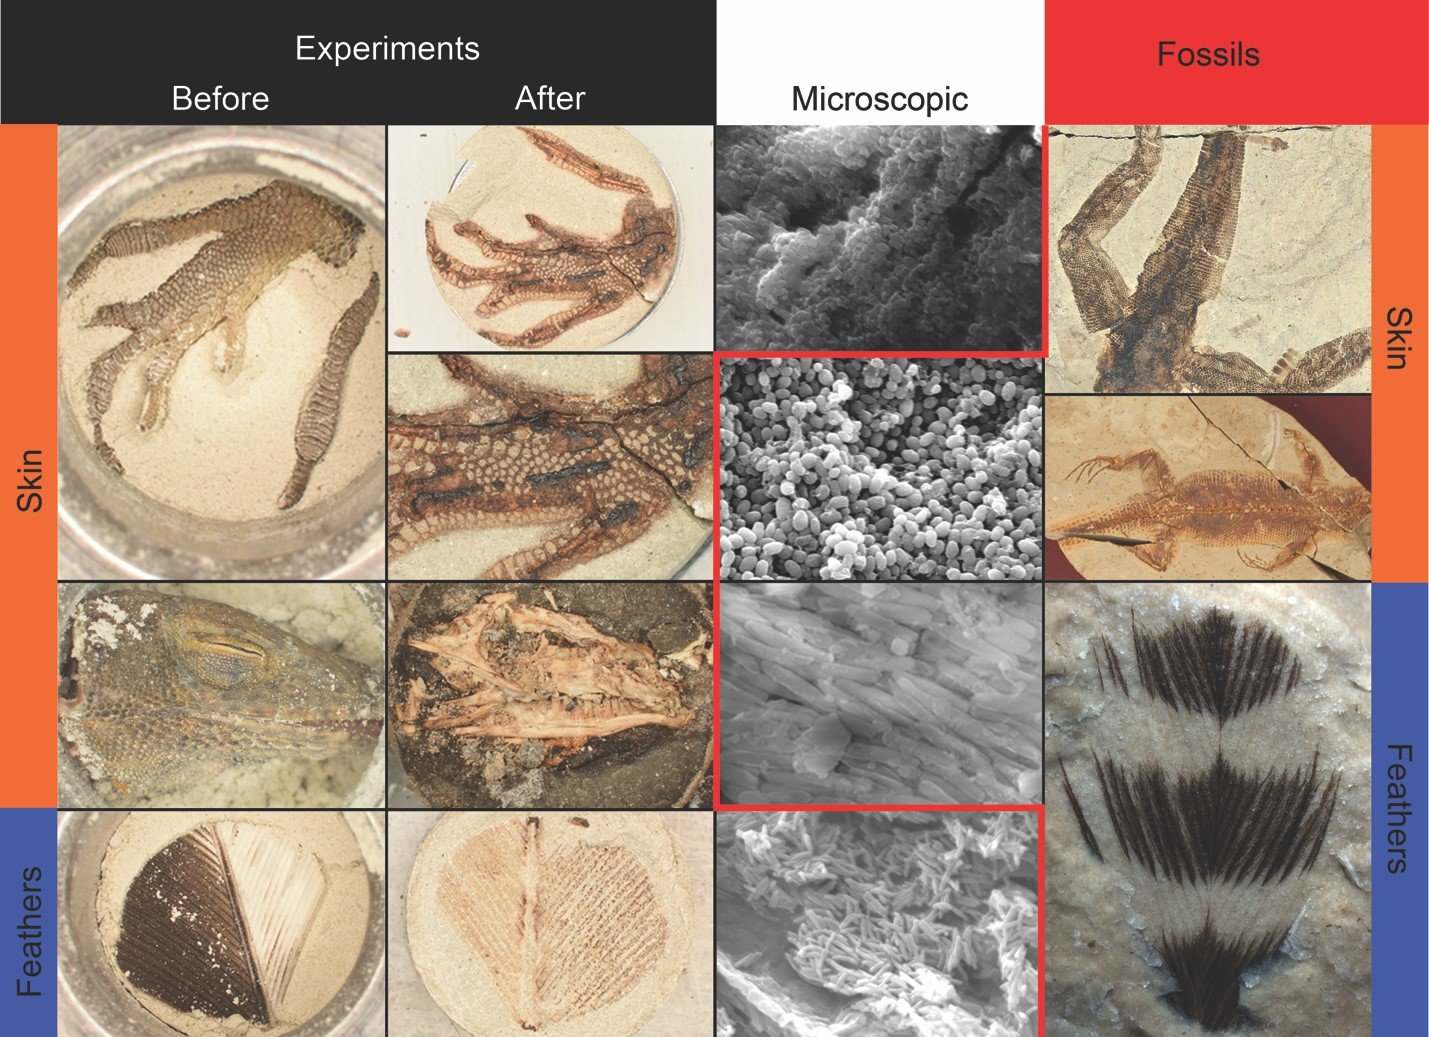 creating synthetic fossils in the lab sheds light on fossilization